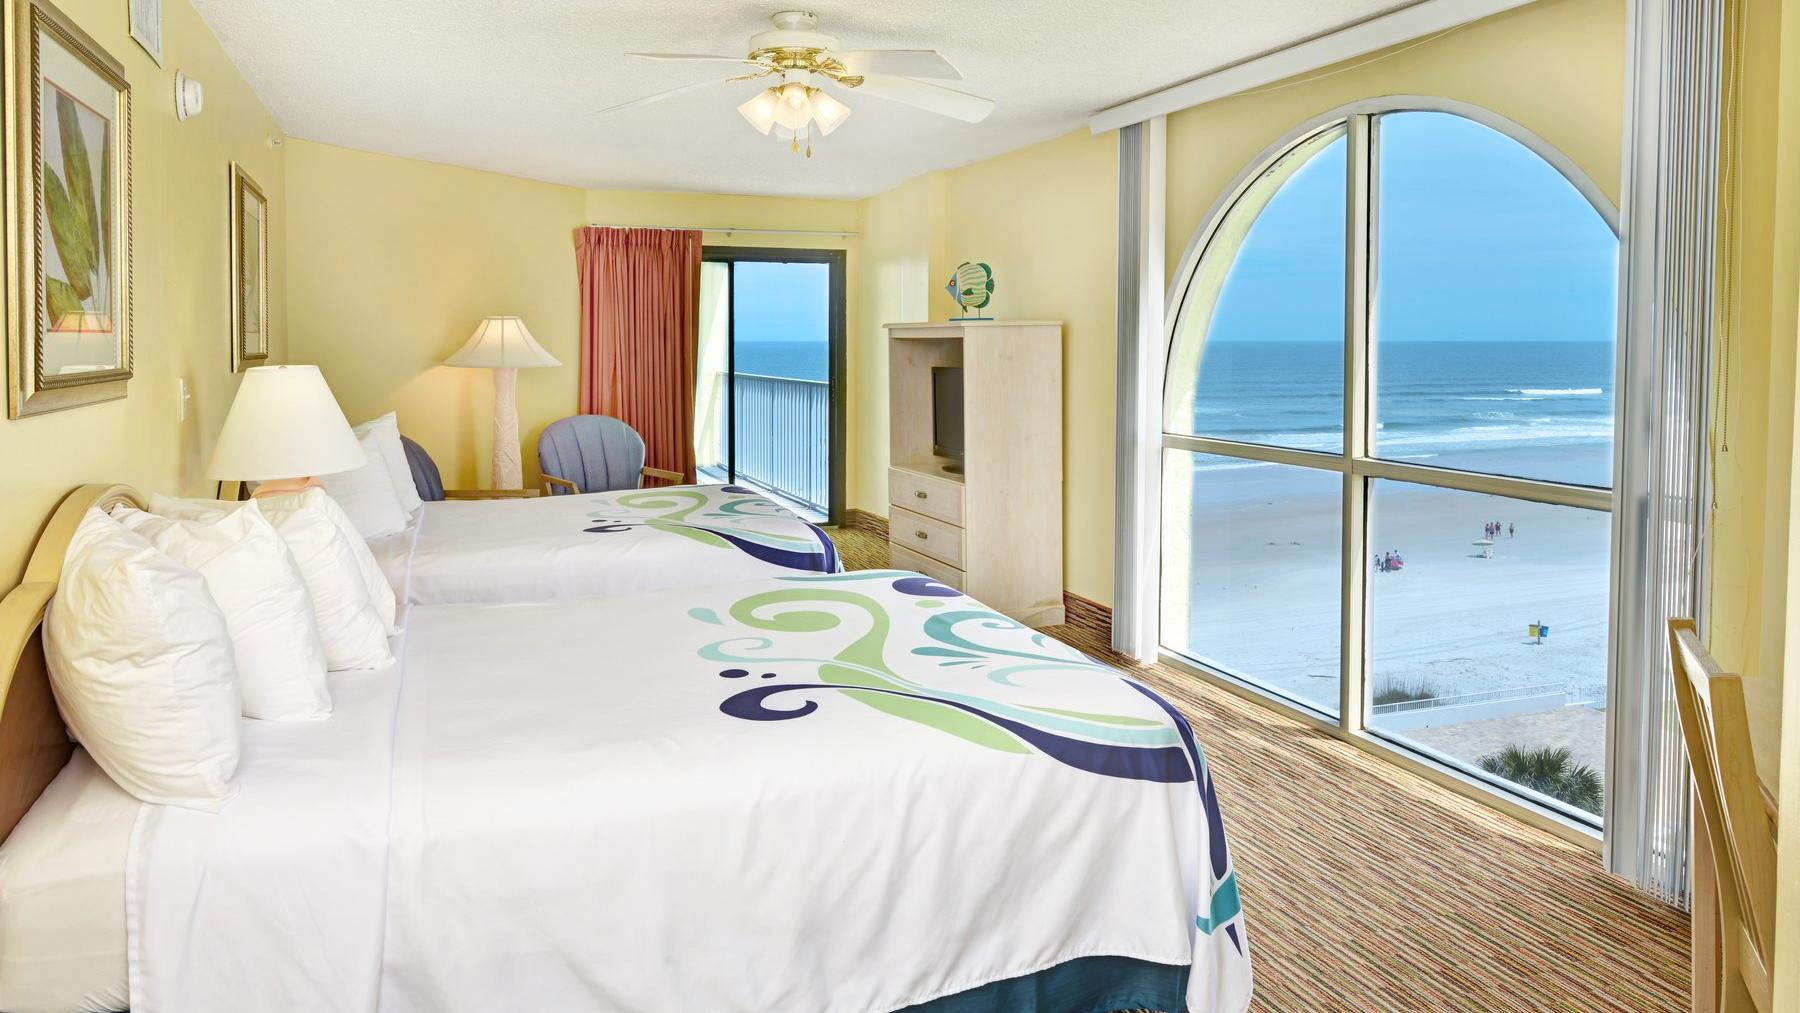 Oceanview hotel room with two beds.